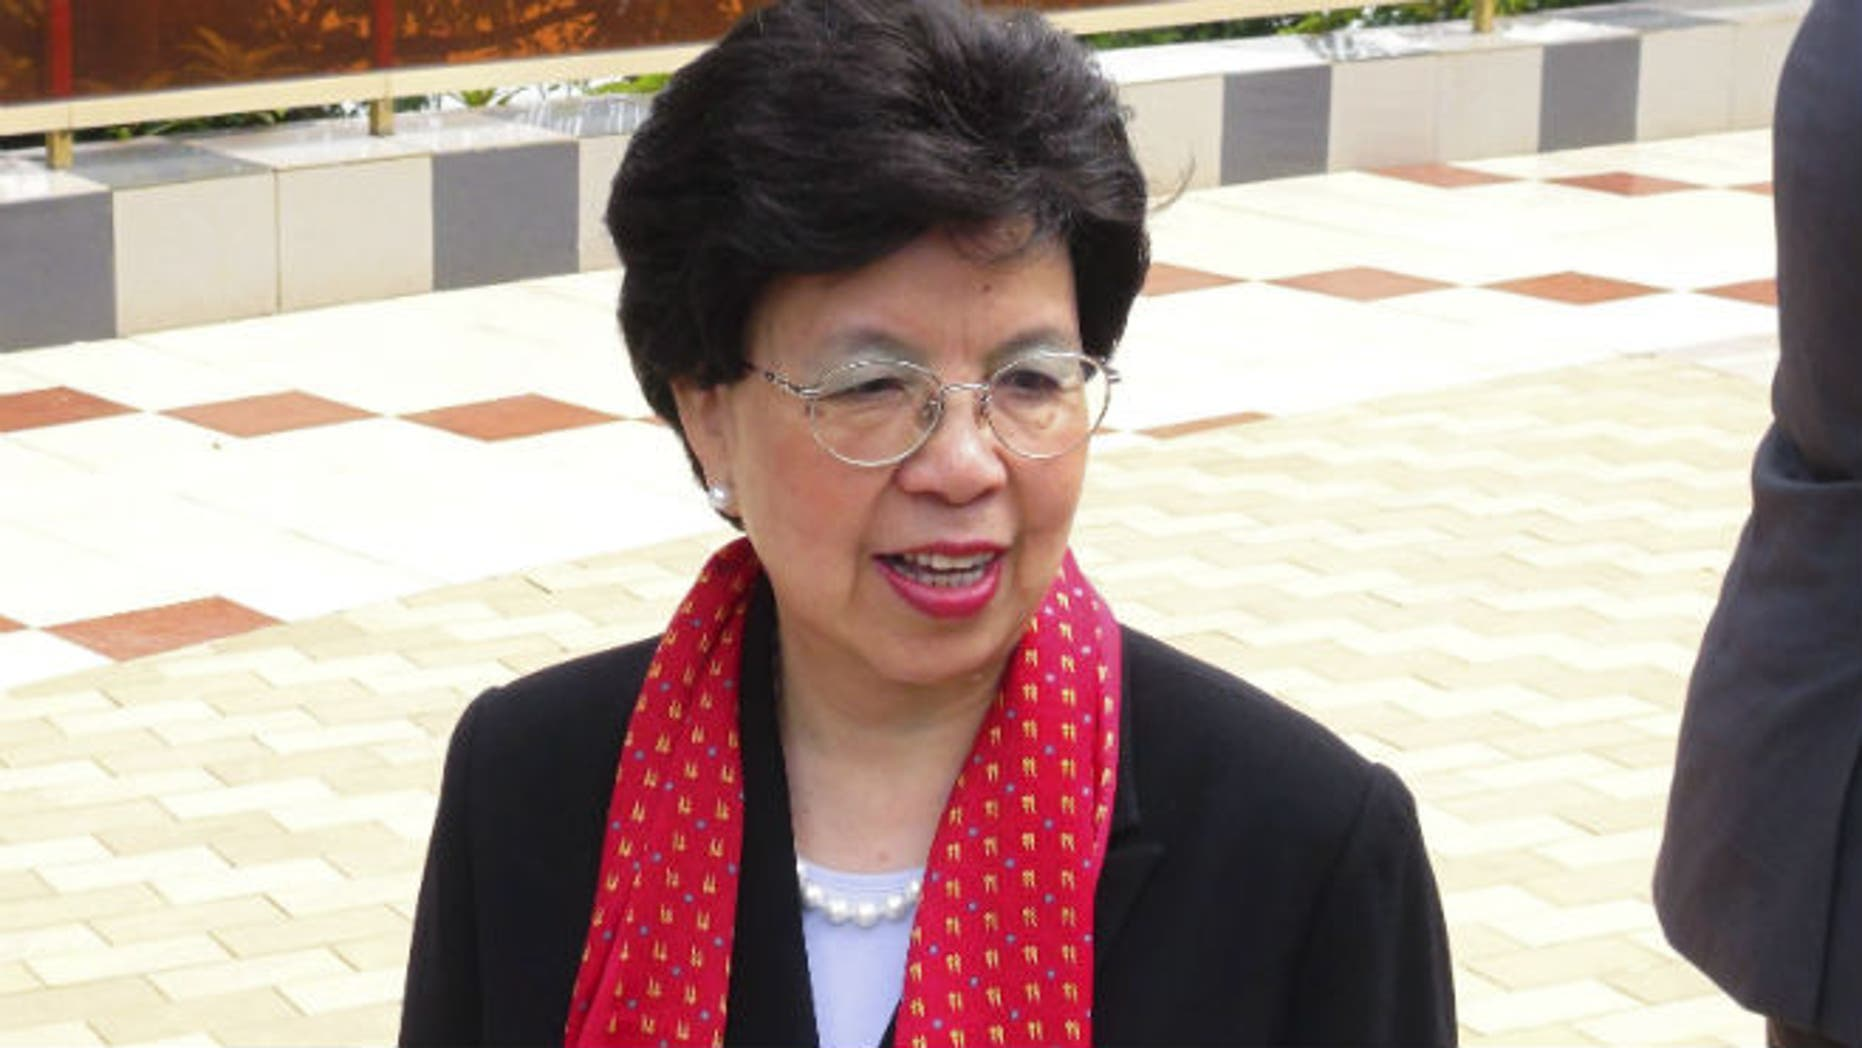 Margaret Chan, president of the World Health Organization, arrives for a conference on the Ebola virus in Conakry August 1, 2014. REUTERS/Saliou Samb